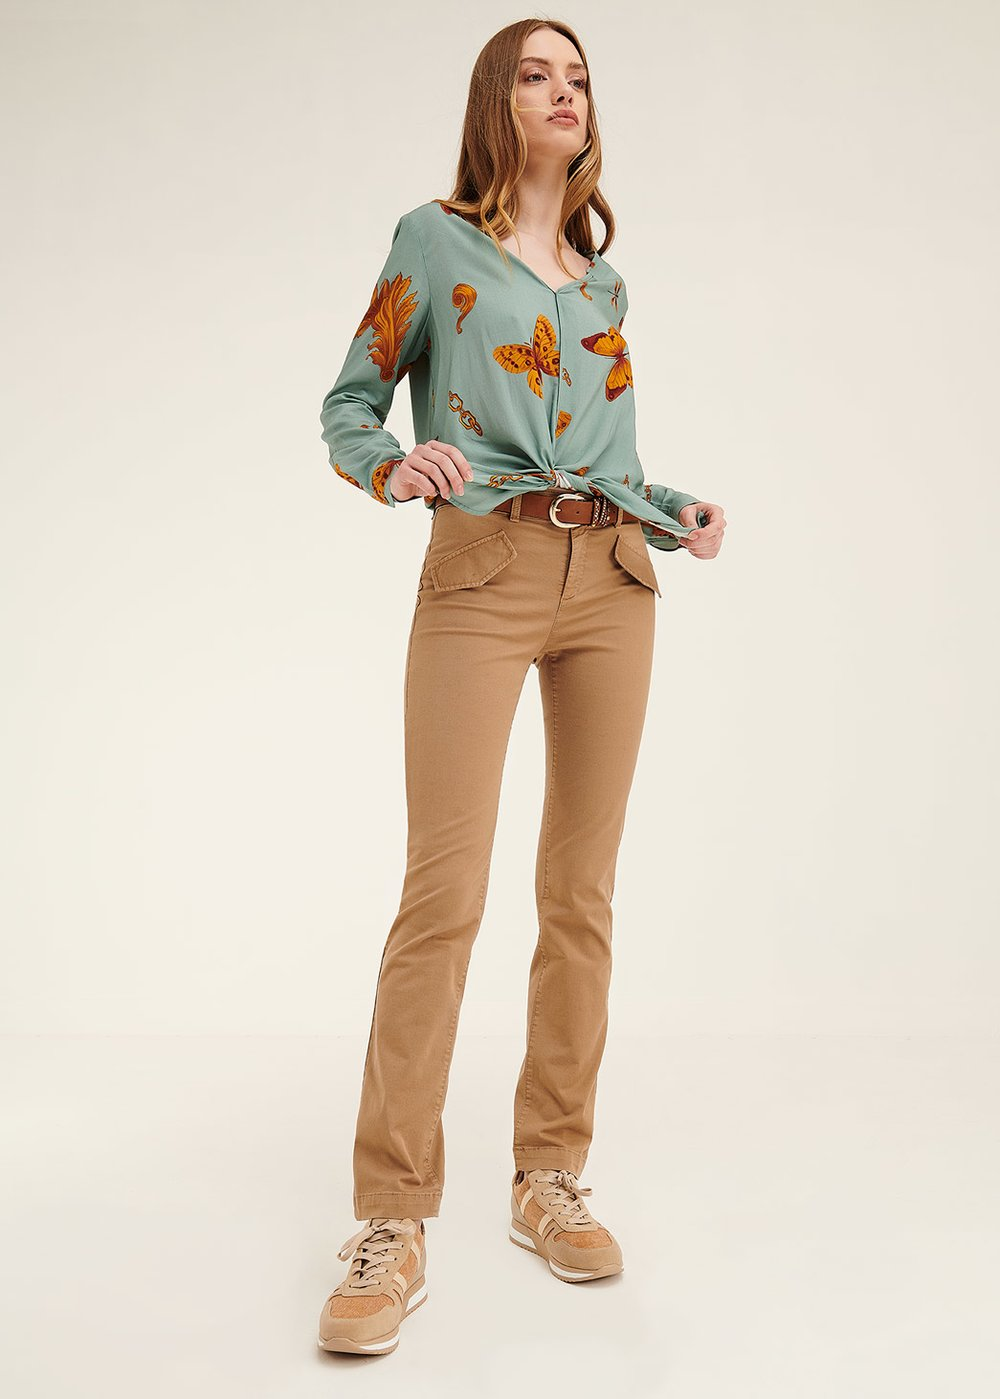 Hiking trousers with flap pockets on the front - Taupe - Woman